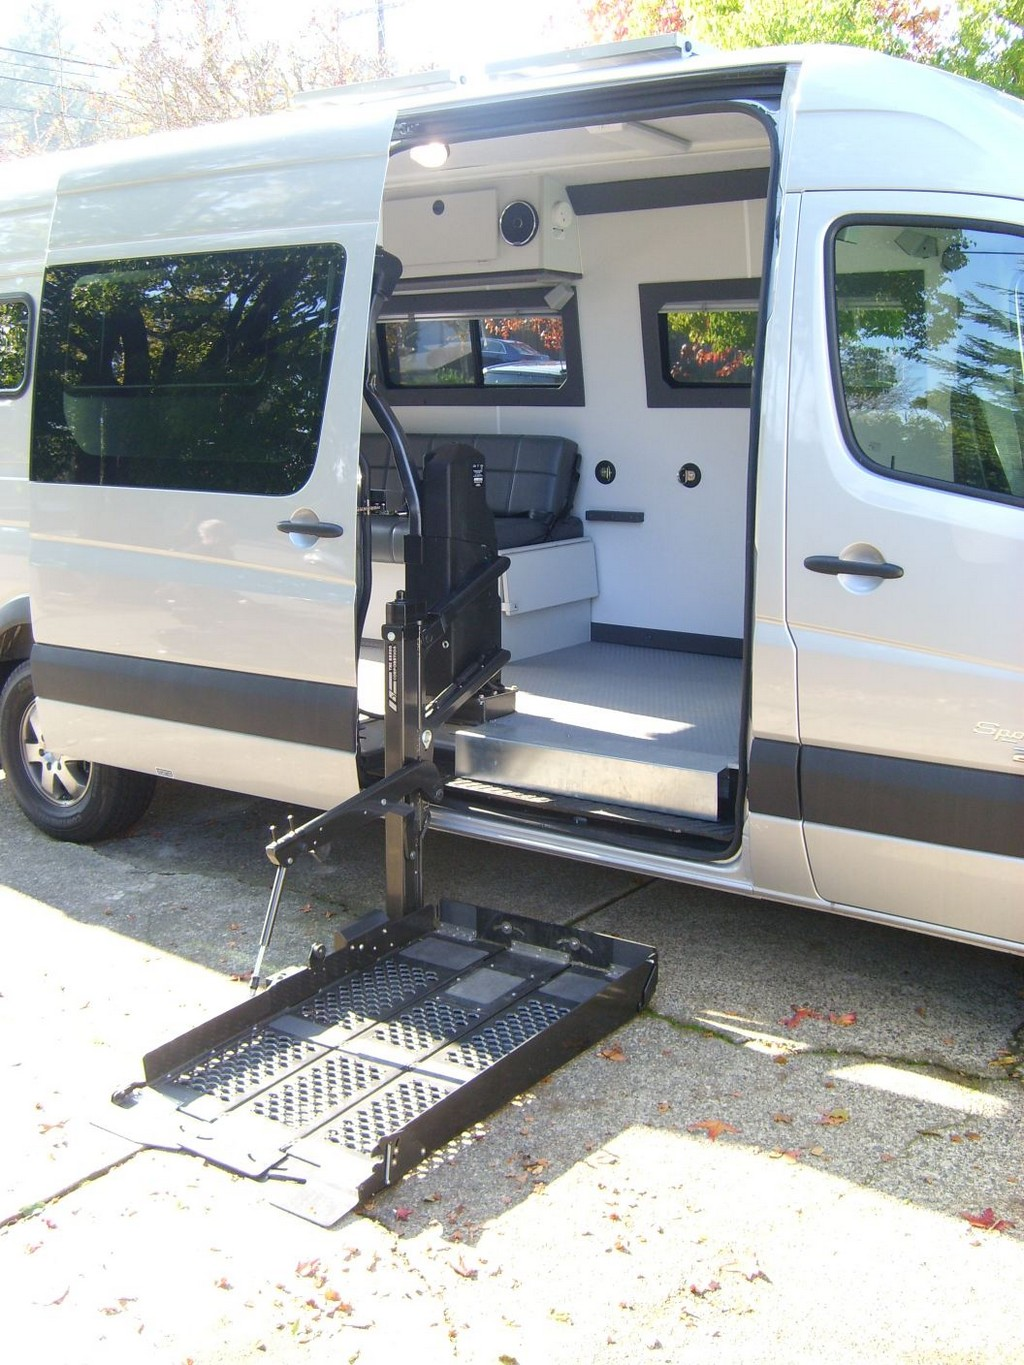 Elegant Compact Two Berth With Rear Wheelchair LiftLockdown Floor FixingsFully Equipped  About JC Leisure Our Range Of Motorhomes Includes Quality Models From British Built Tribute, Autocruise, Autosleeper Bessacarr, Swift And